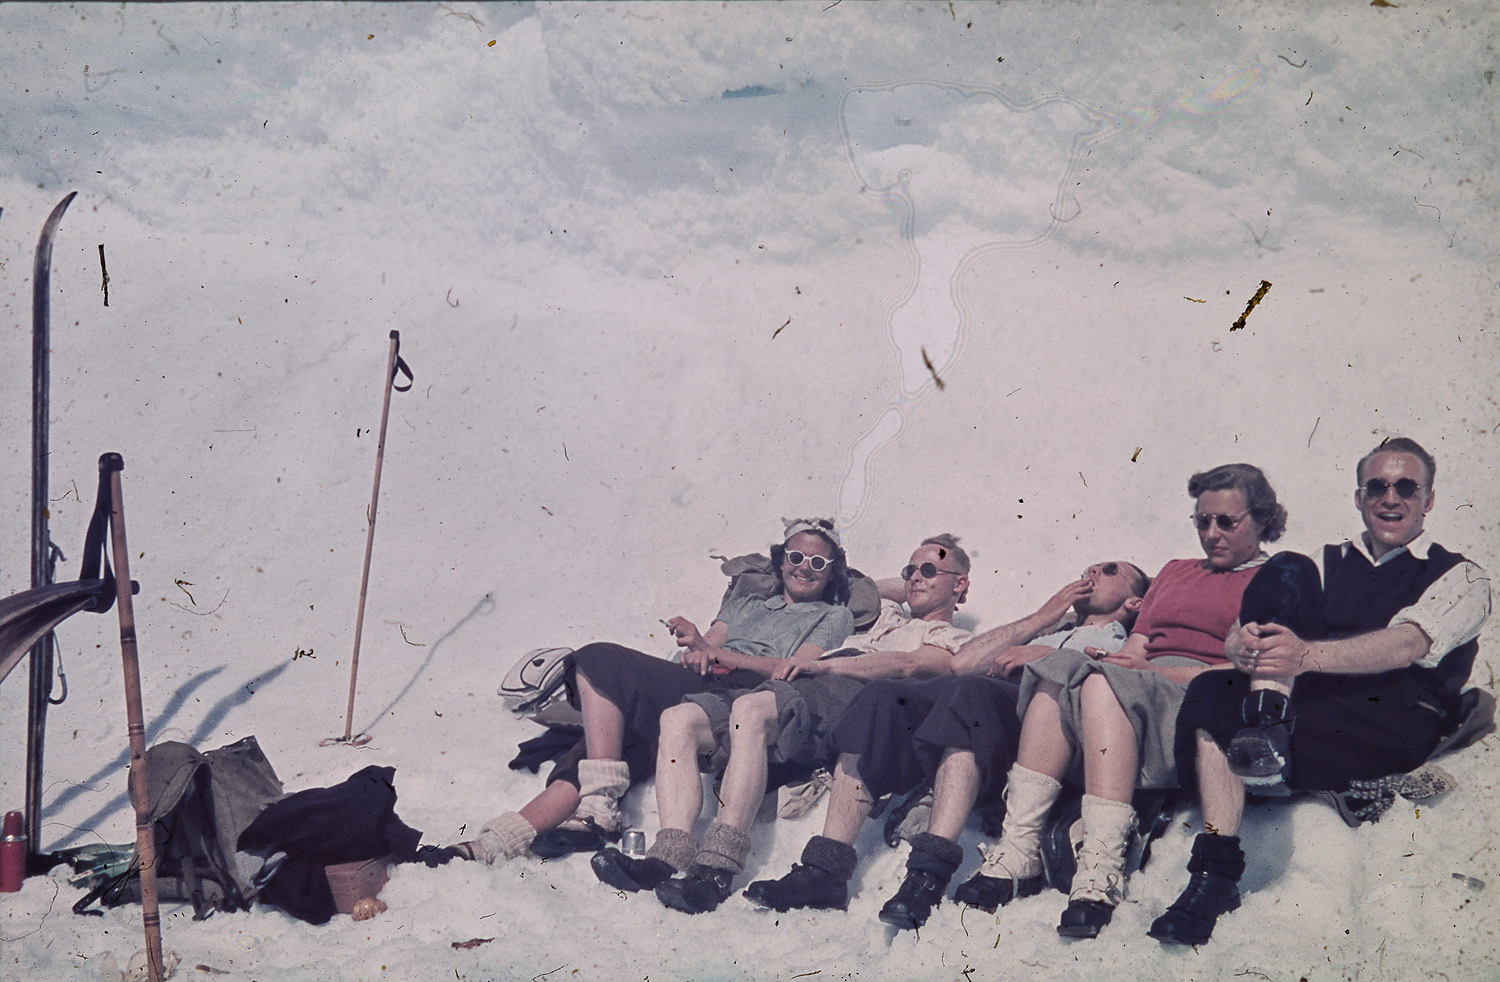 Original color photo of a group of skiers sunbathing on a mountain in Norway, 1937.